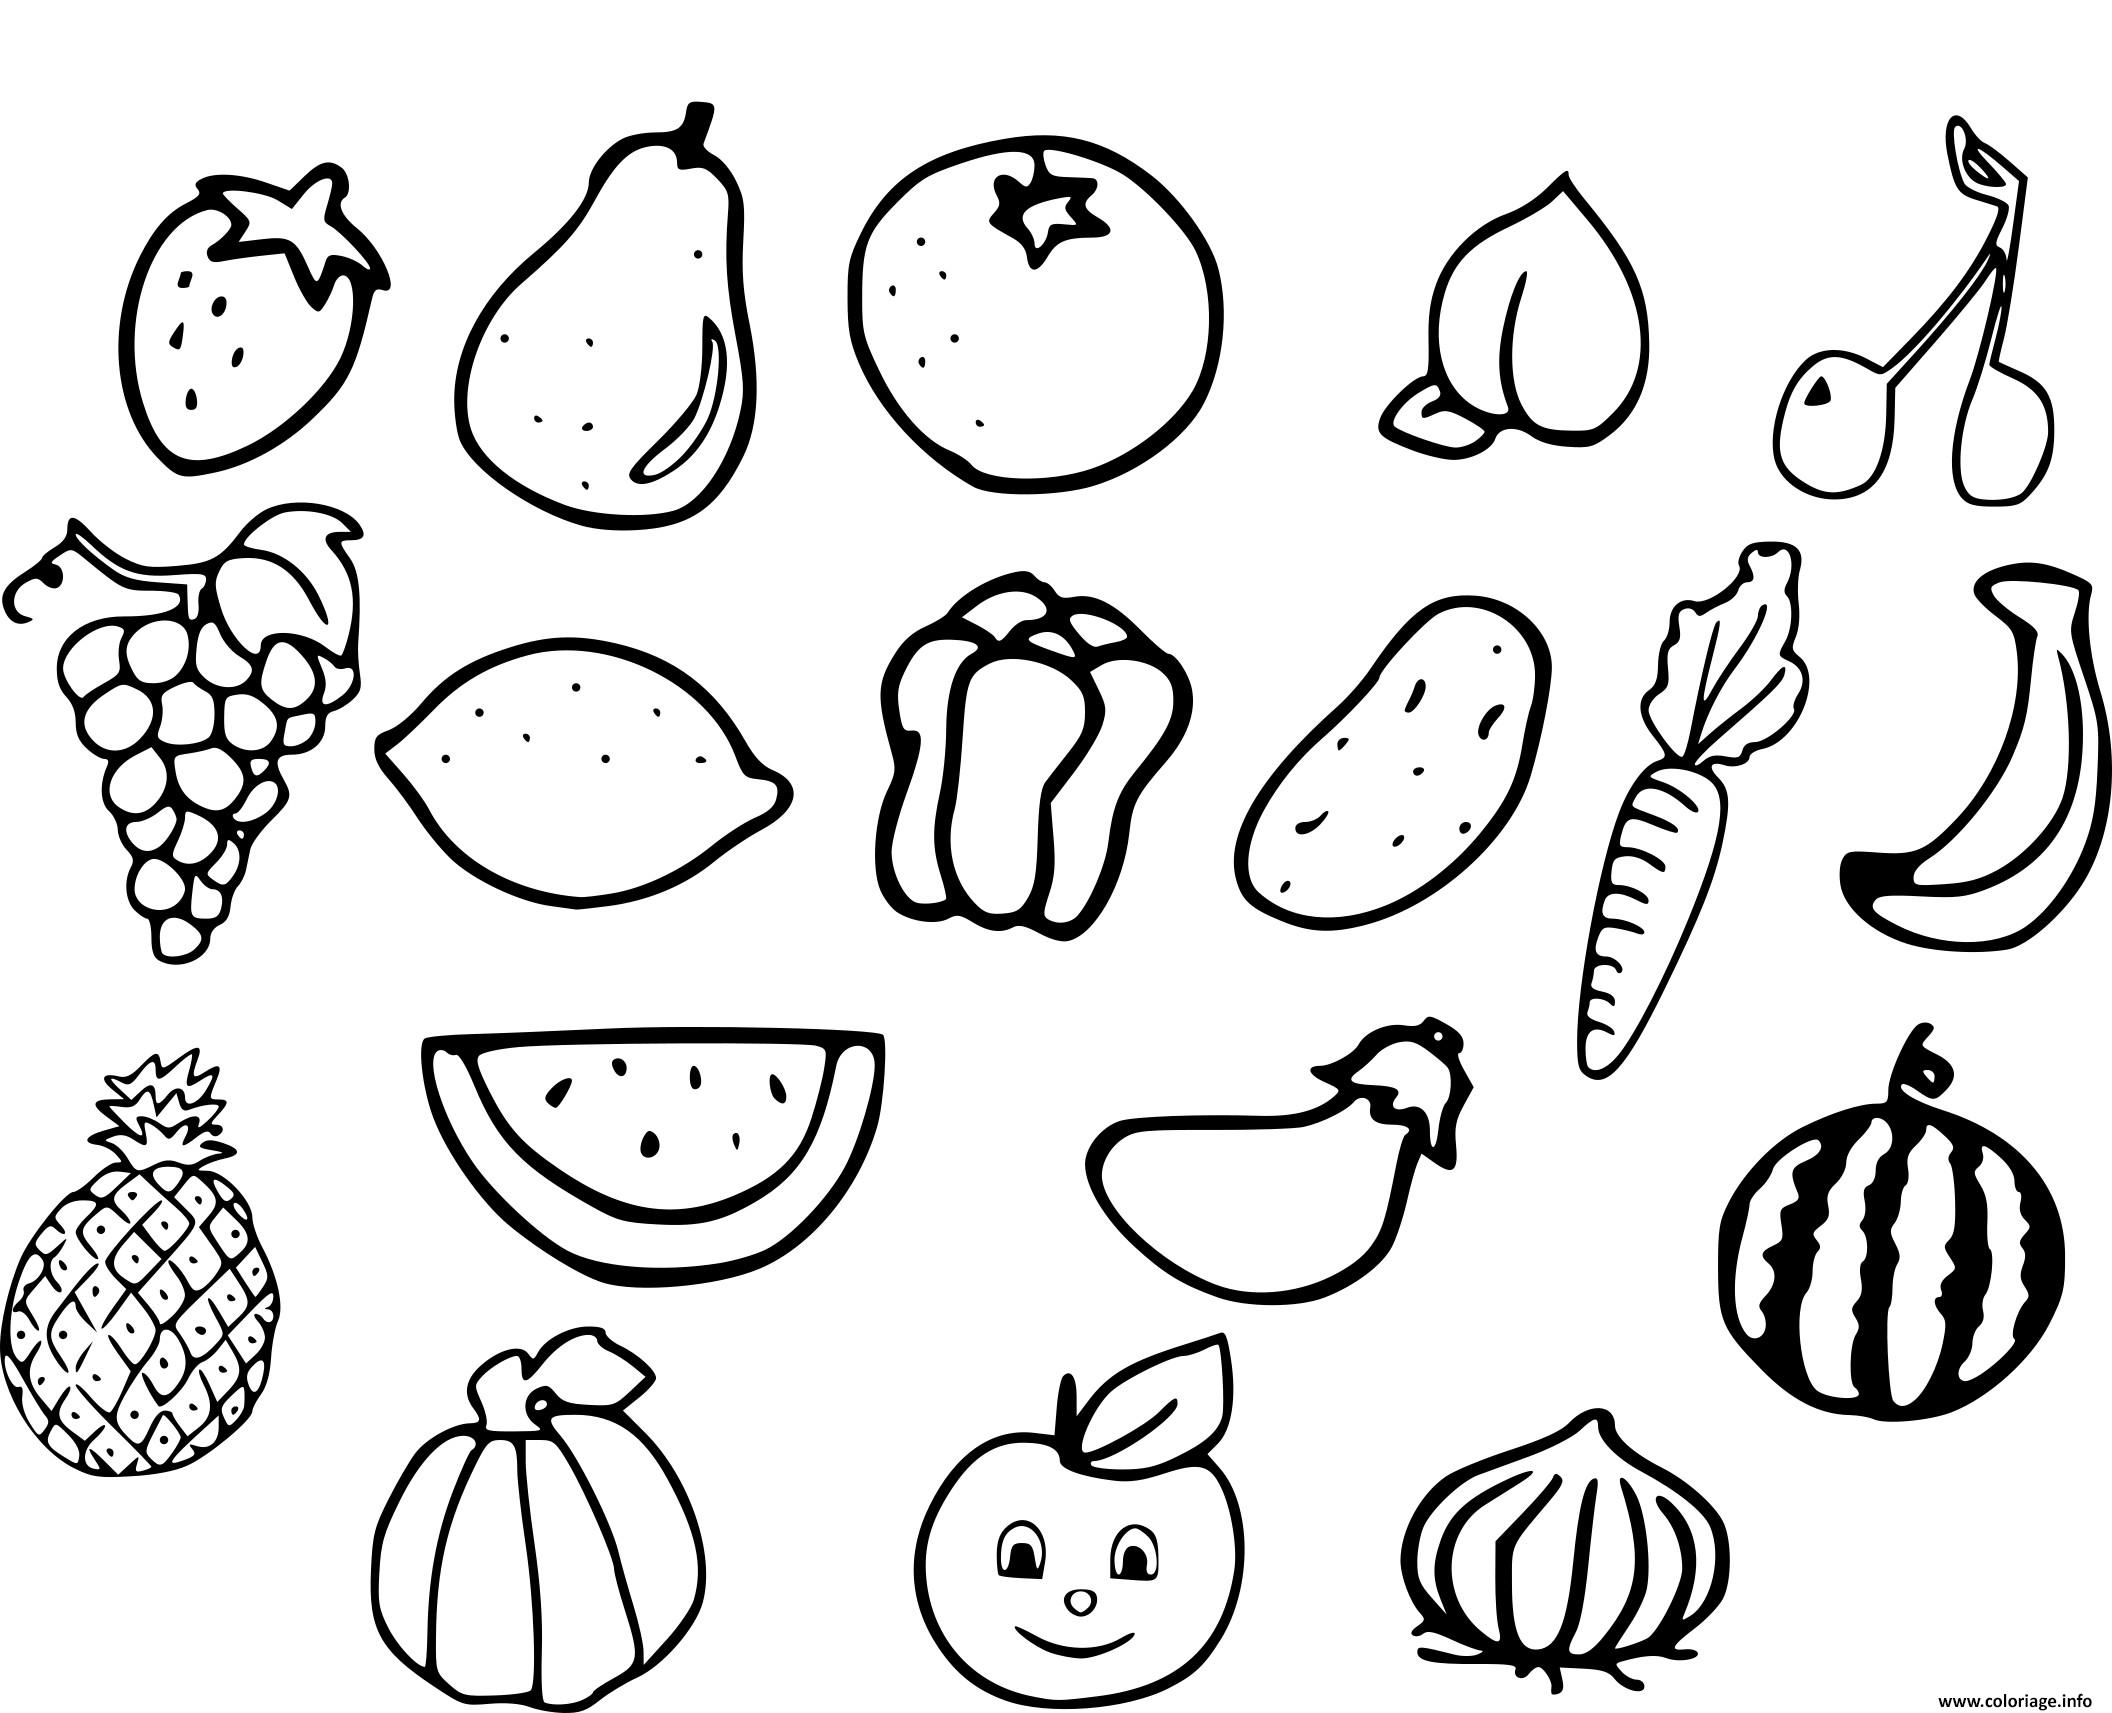 Coloriage Les Fruits.Coloriage Fruits Et Legumes Jecolorie Com